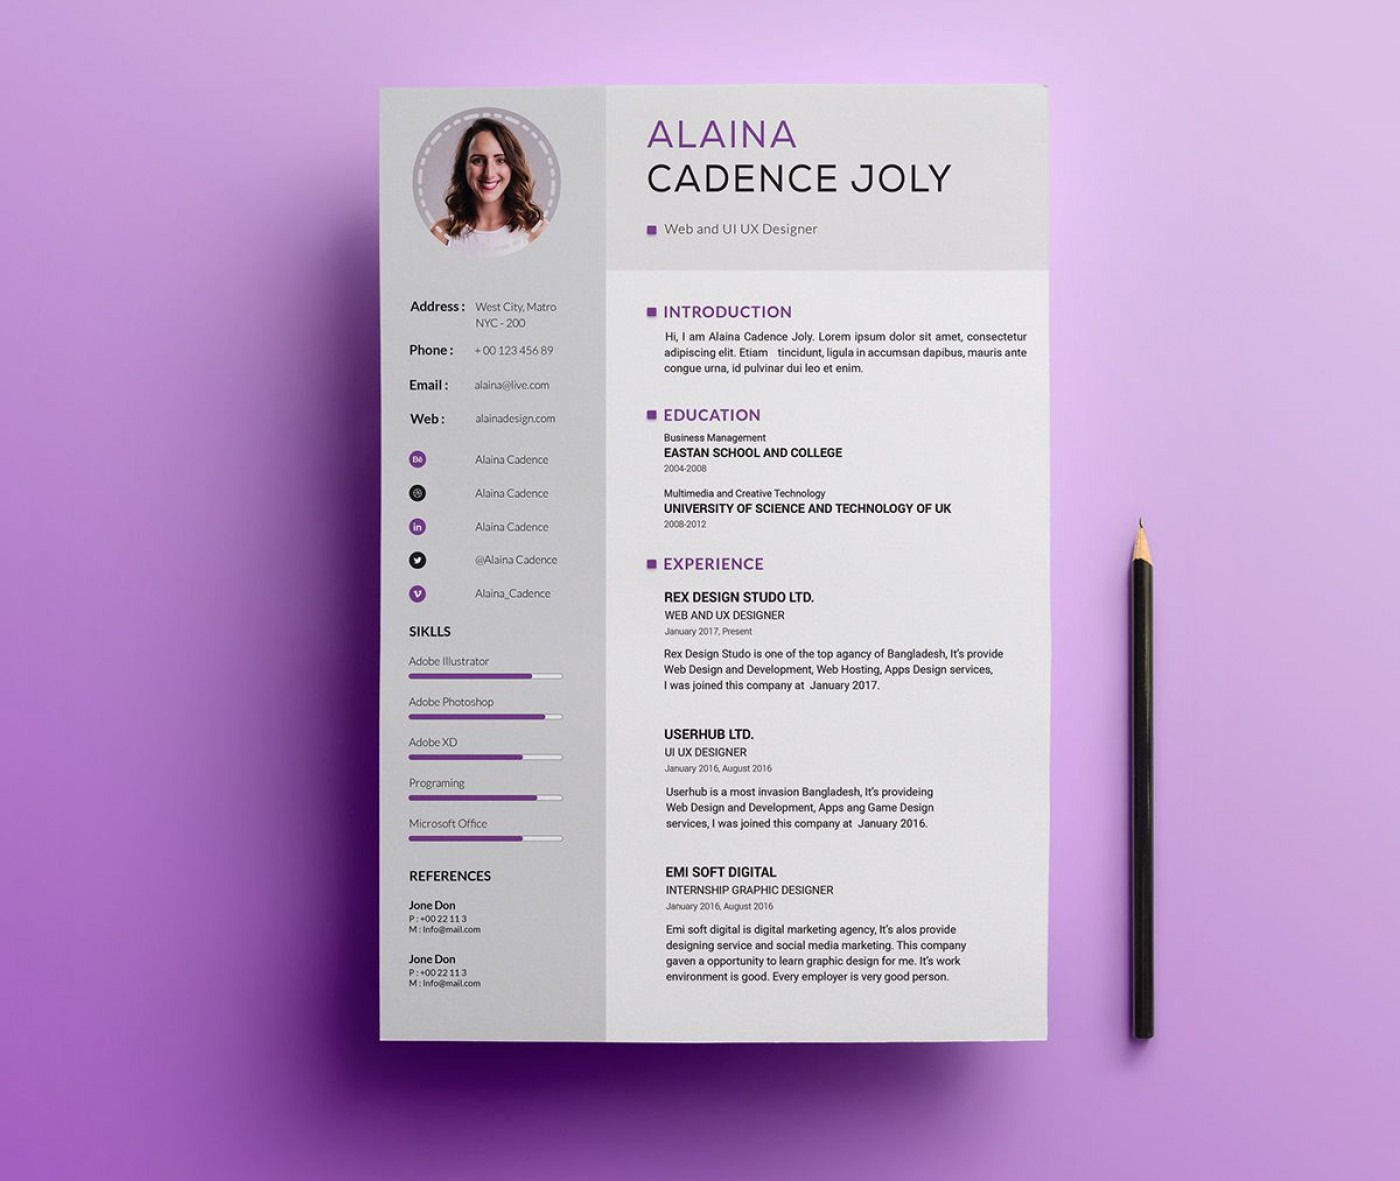 005 Impressive Professional Resume Template 2018 Free Download Idea 1400